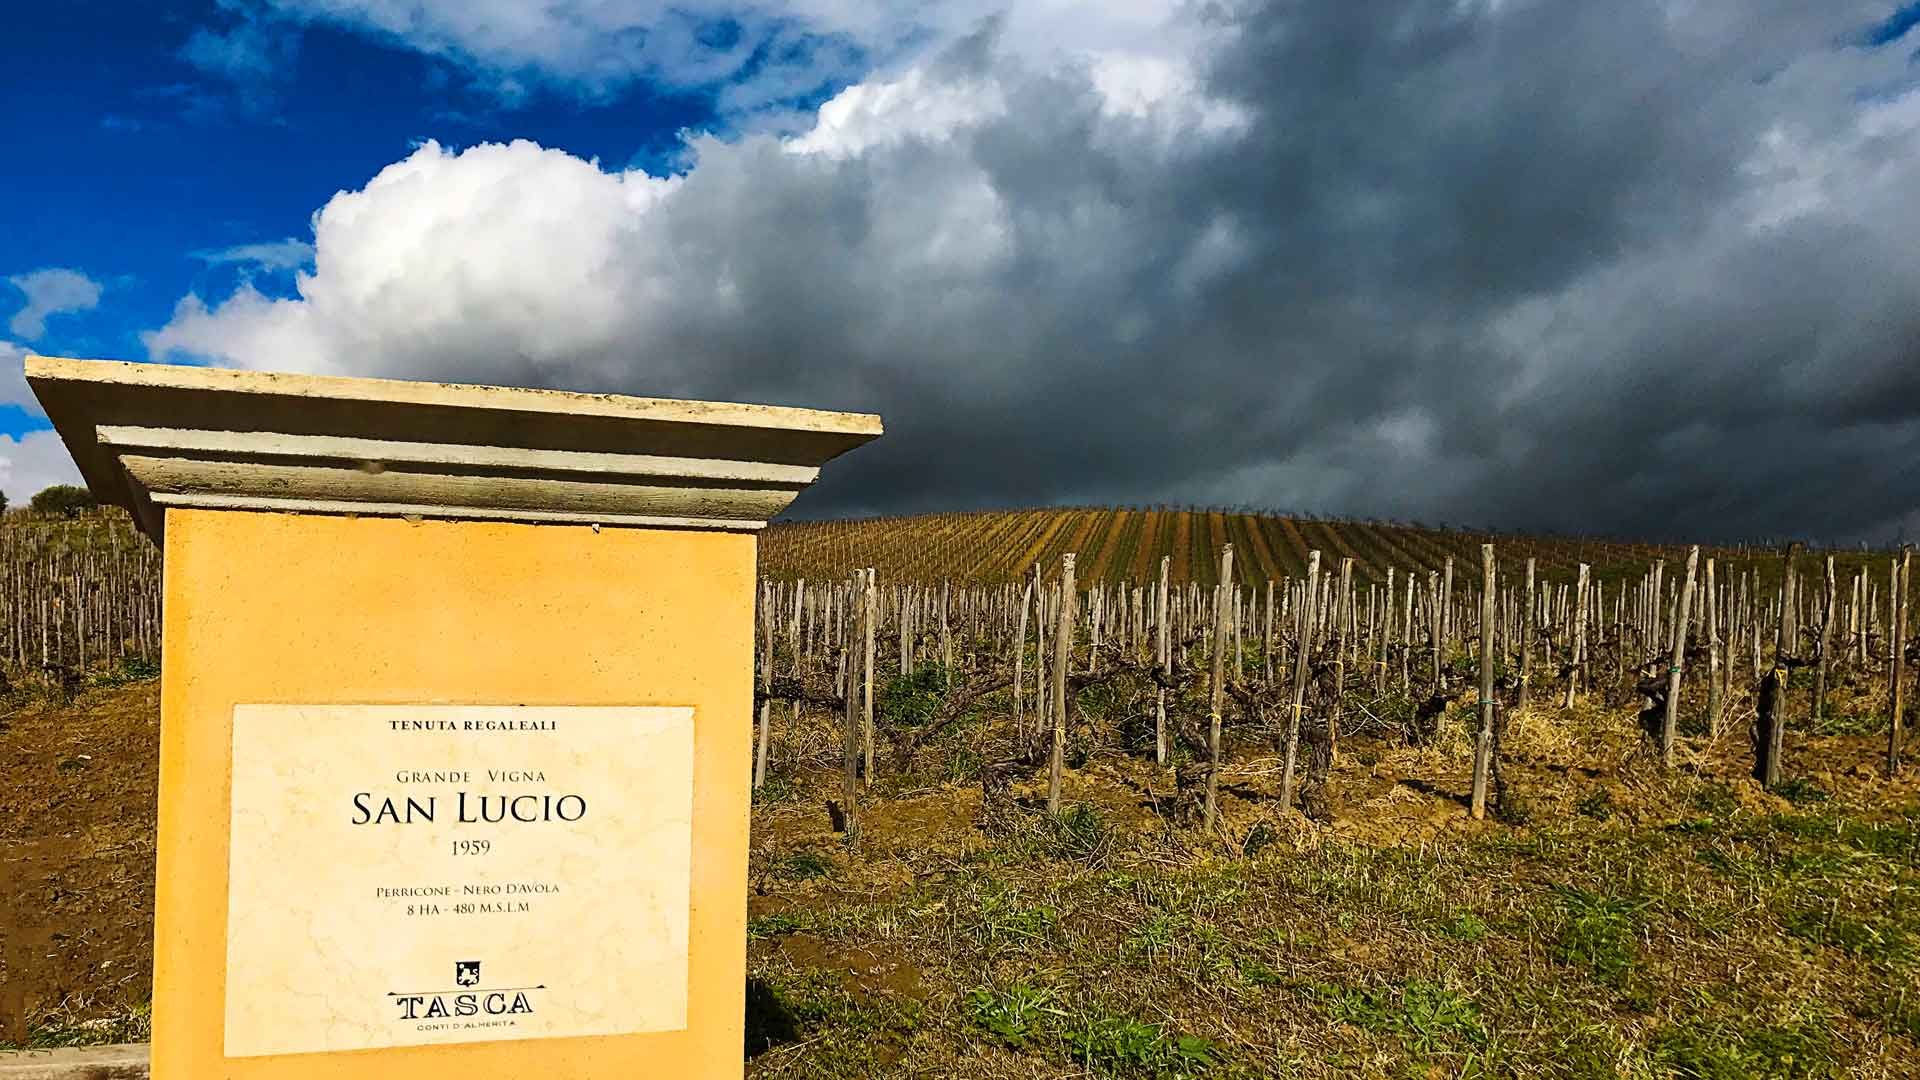 Vineyard San Lucio at Tenuta Regaleali Sicilia